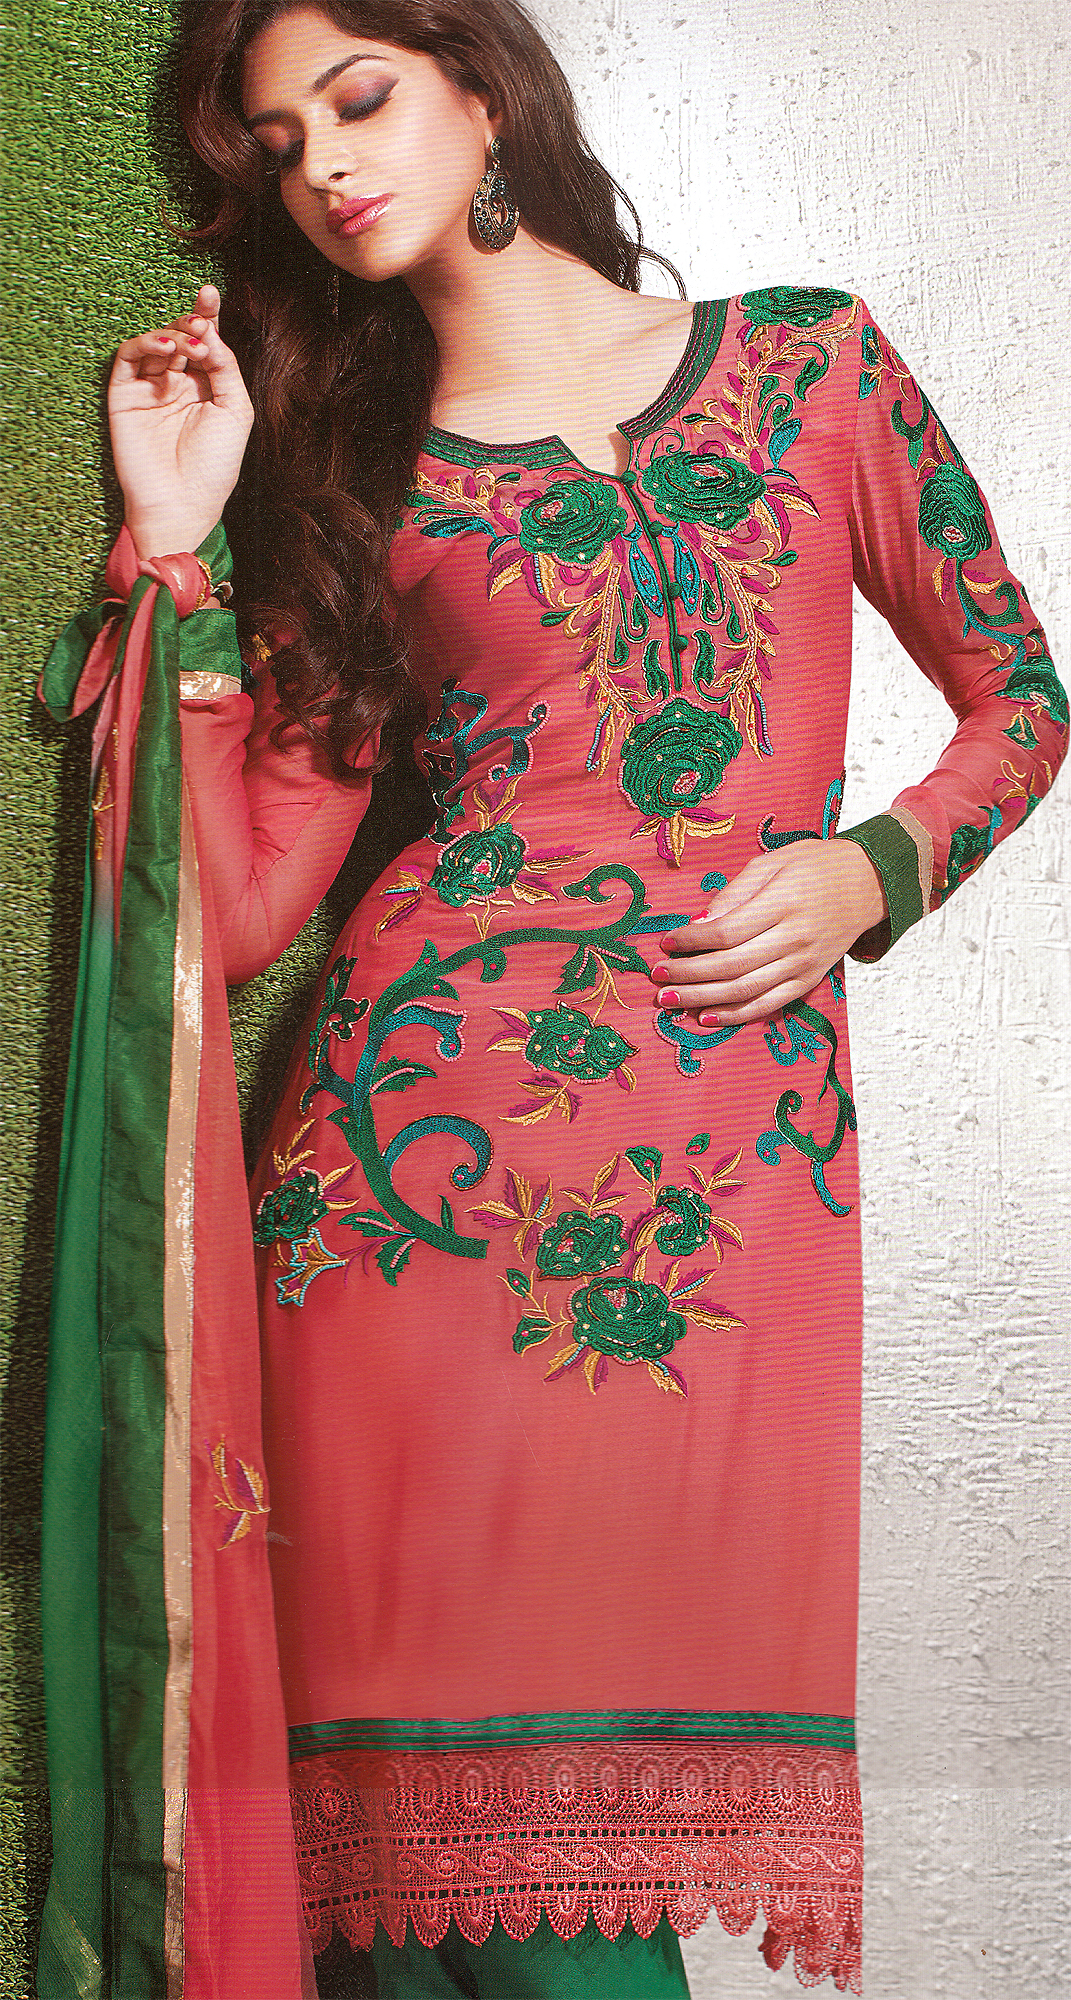 Cerise designer choodidaar suit with embroidered roses and